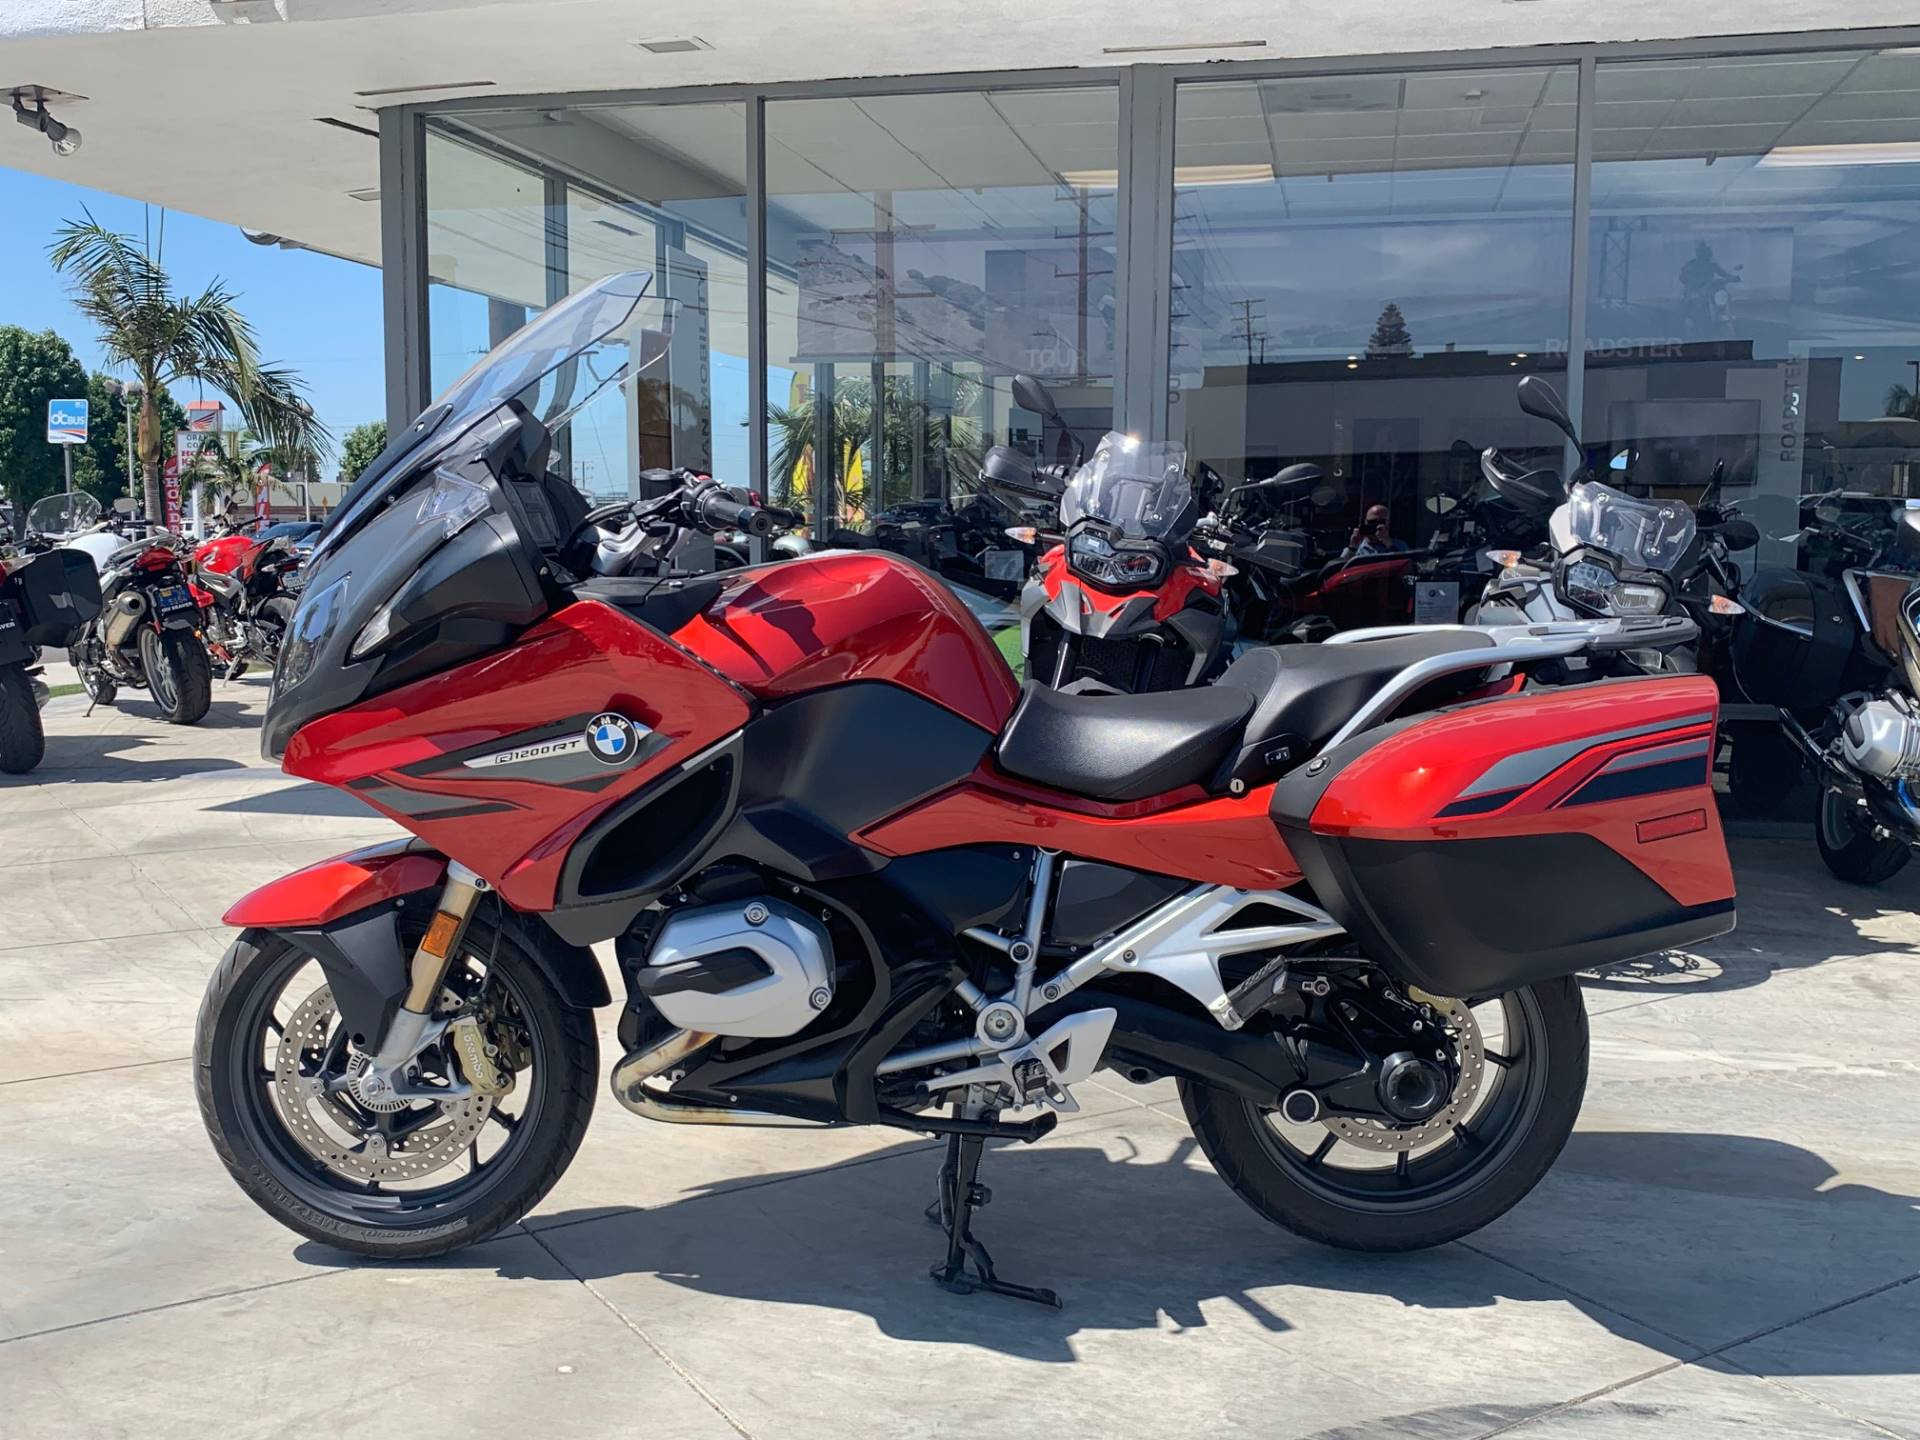 2018 BMW R 1200 RT in Orange, California - Photo 1